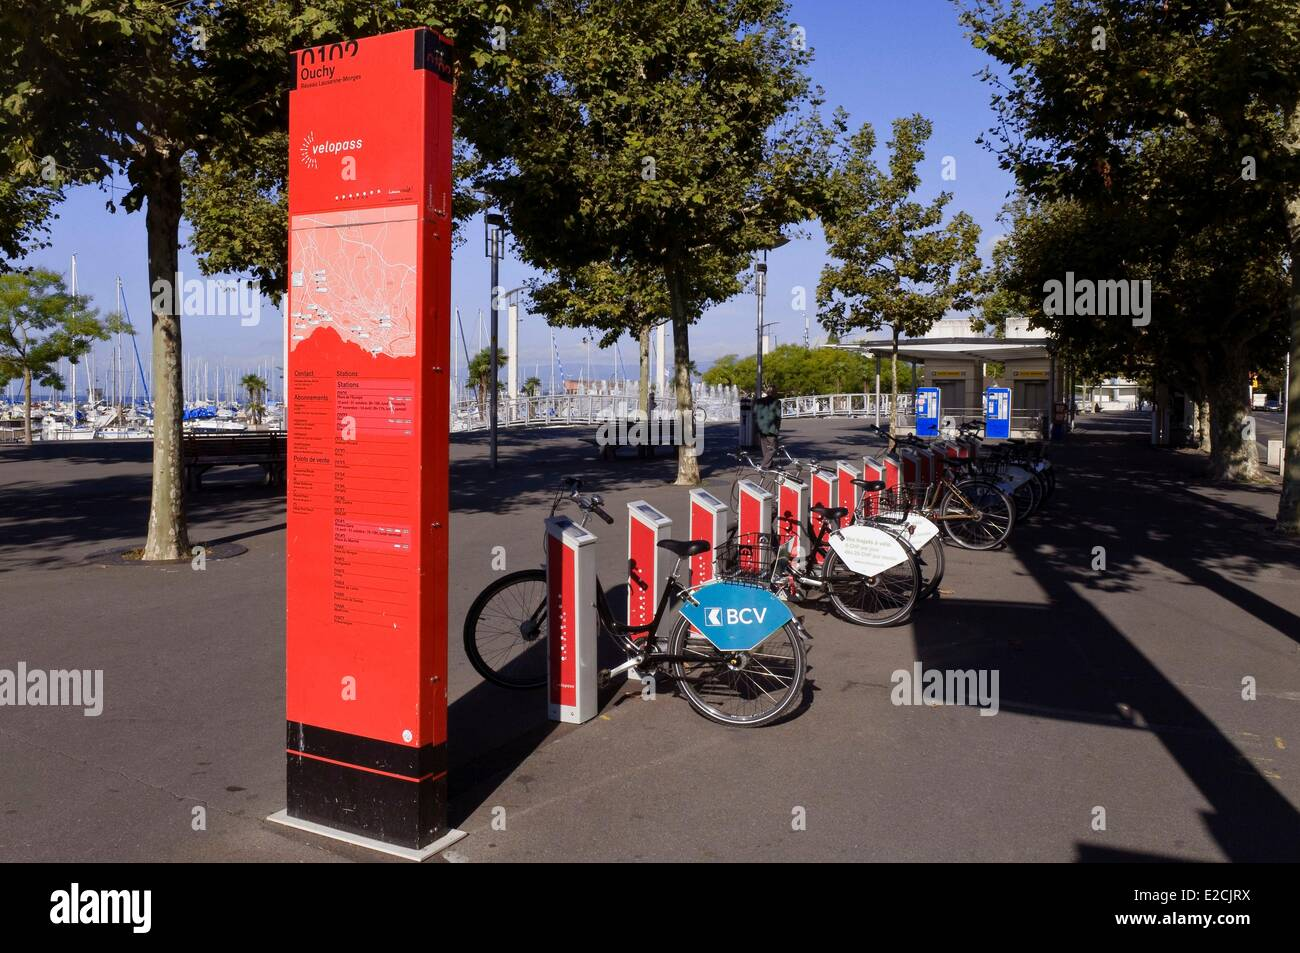 Switzerland, Canton of Vaud, Lausanne, Ouchy district of Lac Leman, Velo-Pass station on Place du Vieux Port - Stock Image